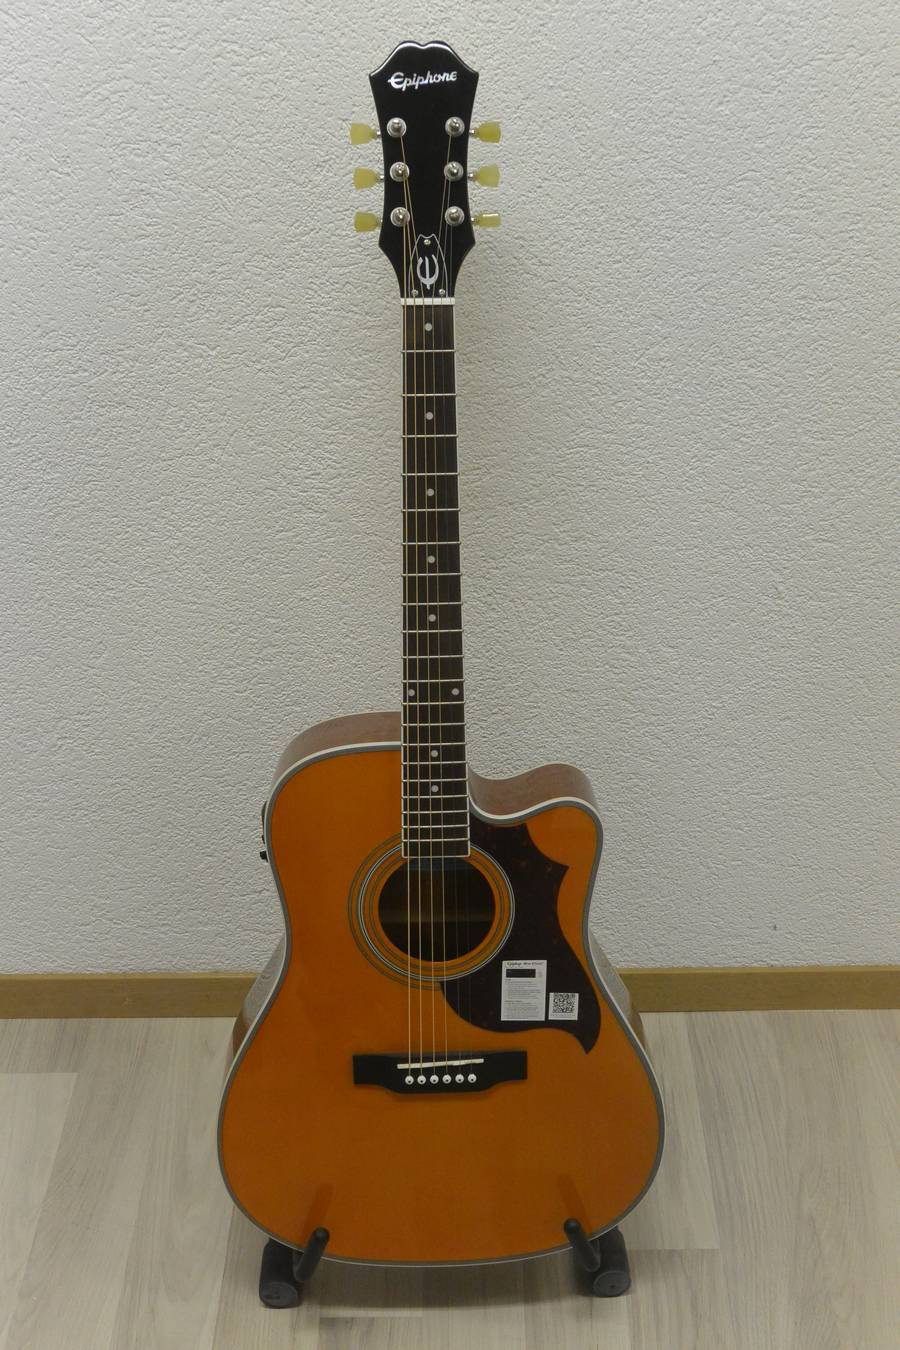 guitare acoustique epiphone FT-350 frs 790.00